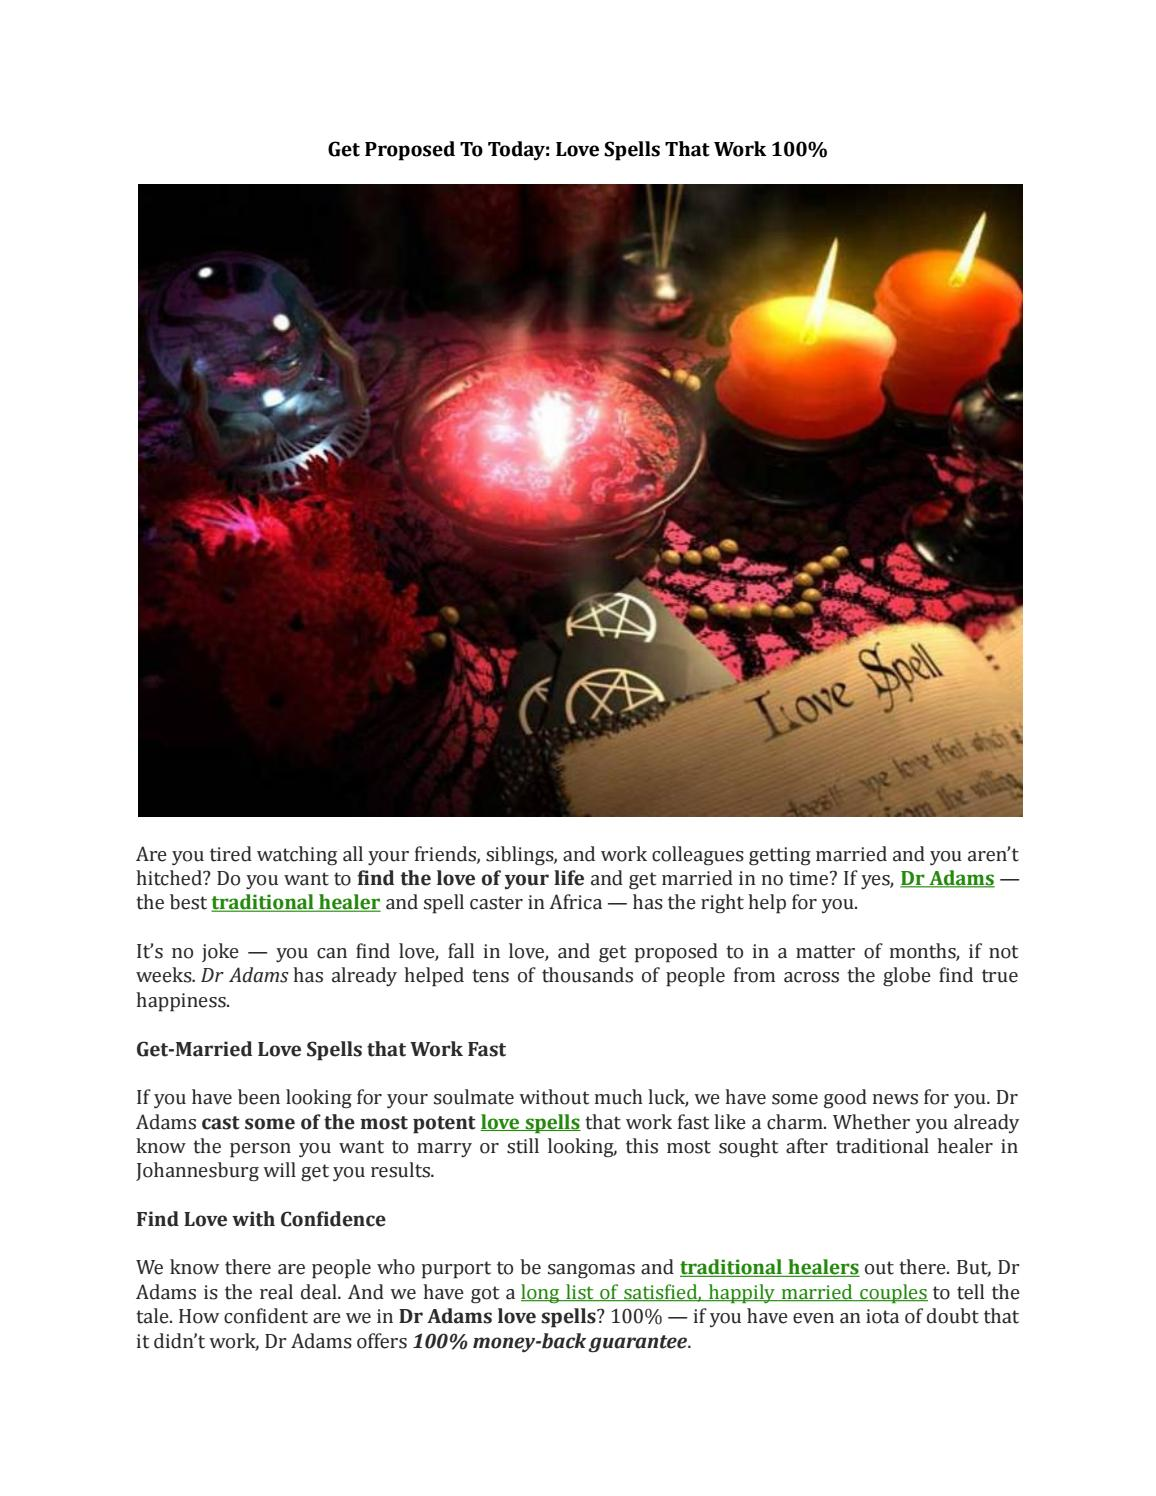 Get proposed to today love spells that work 100 by Dr Adam Spell